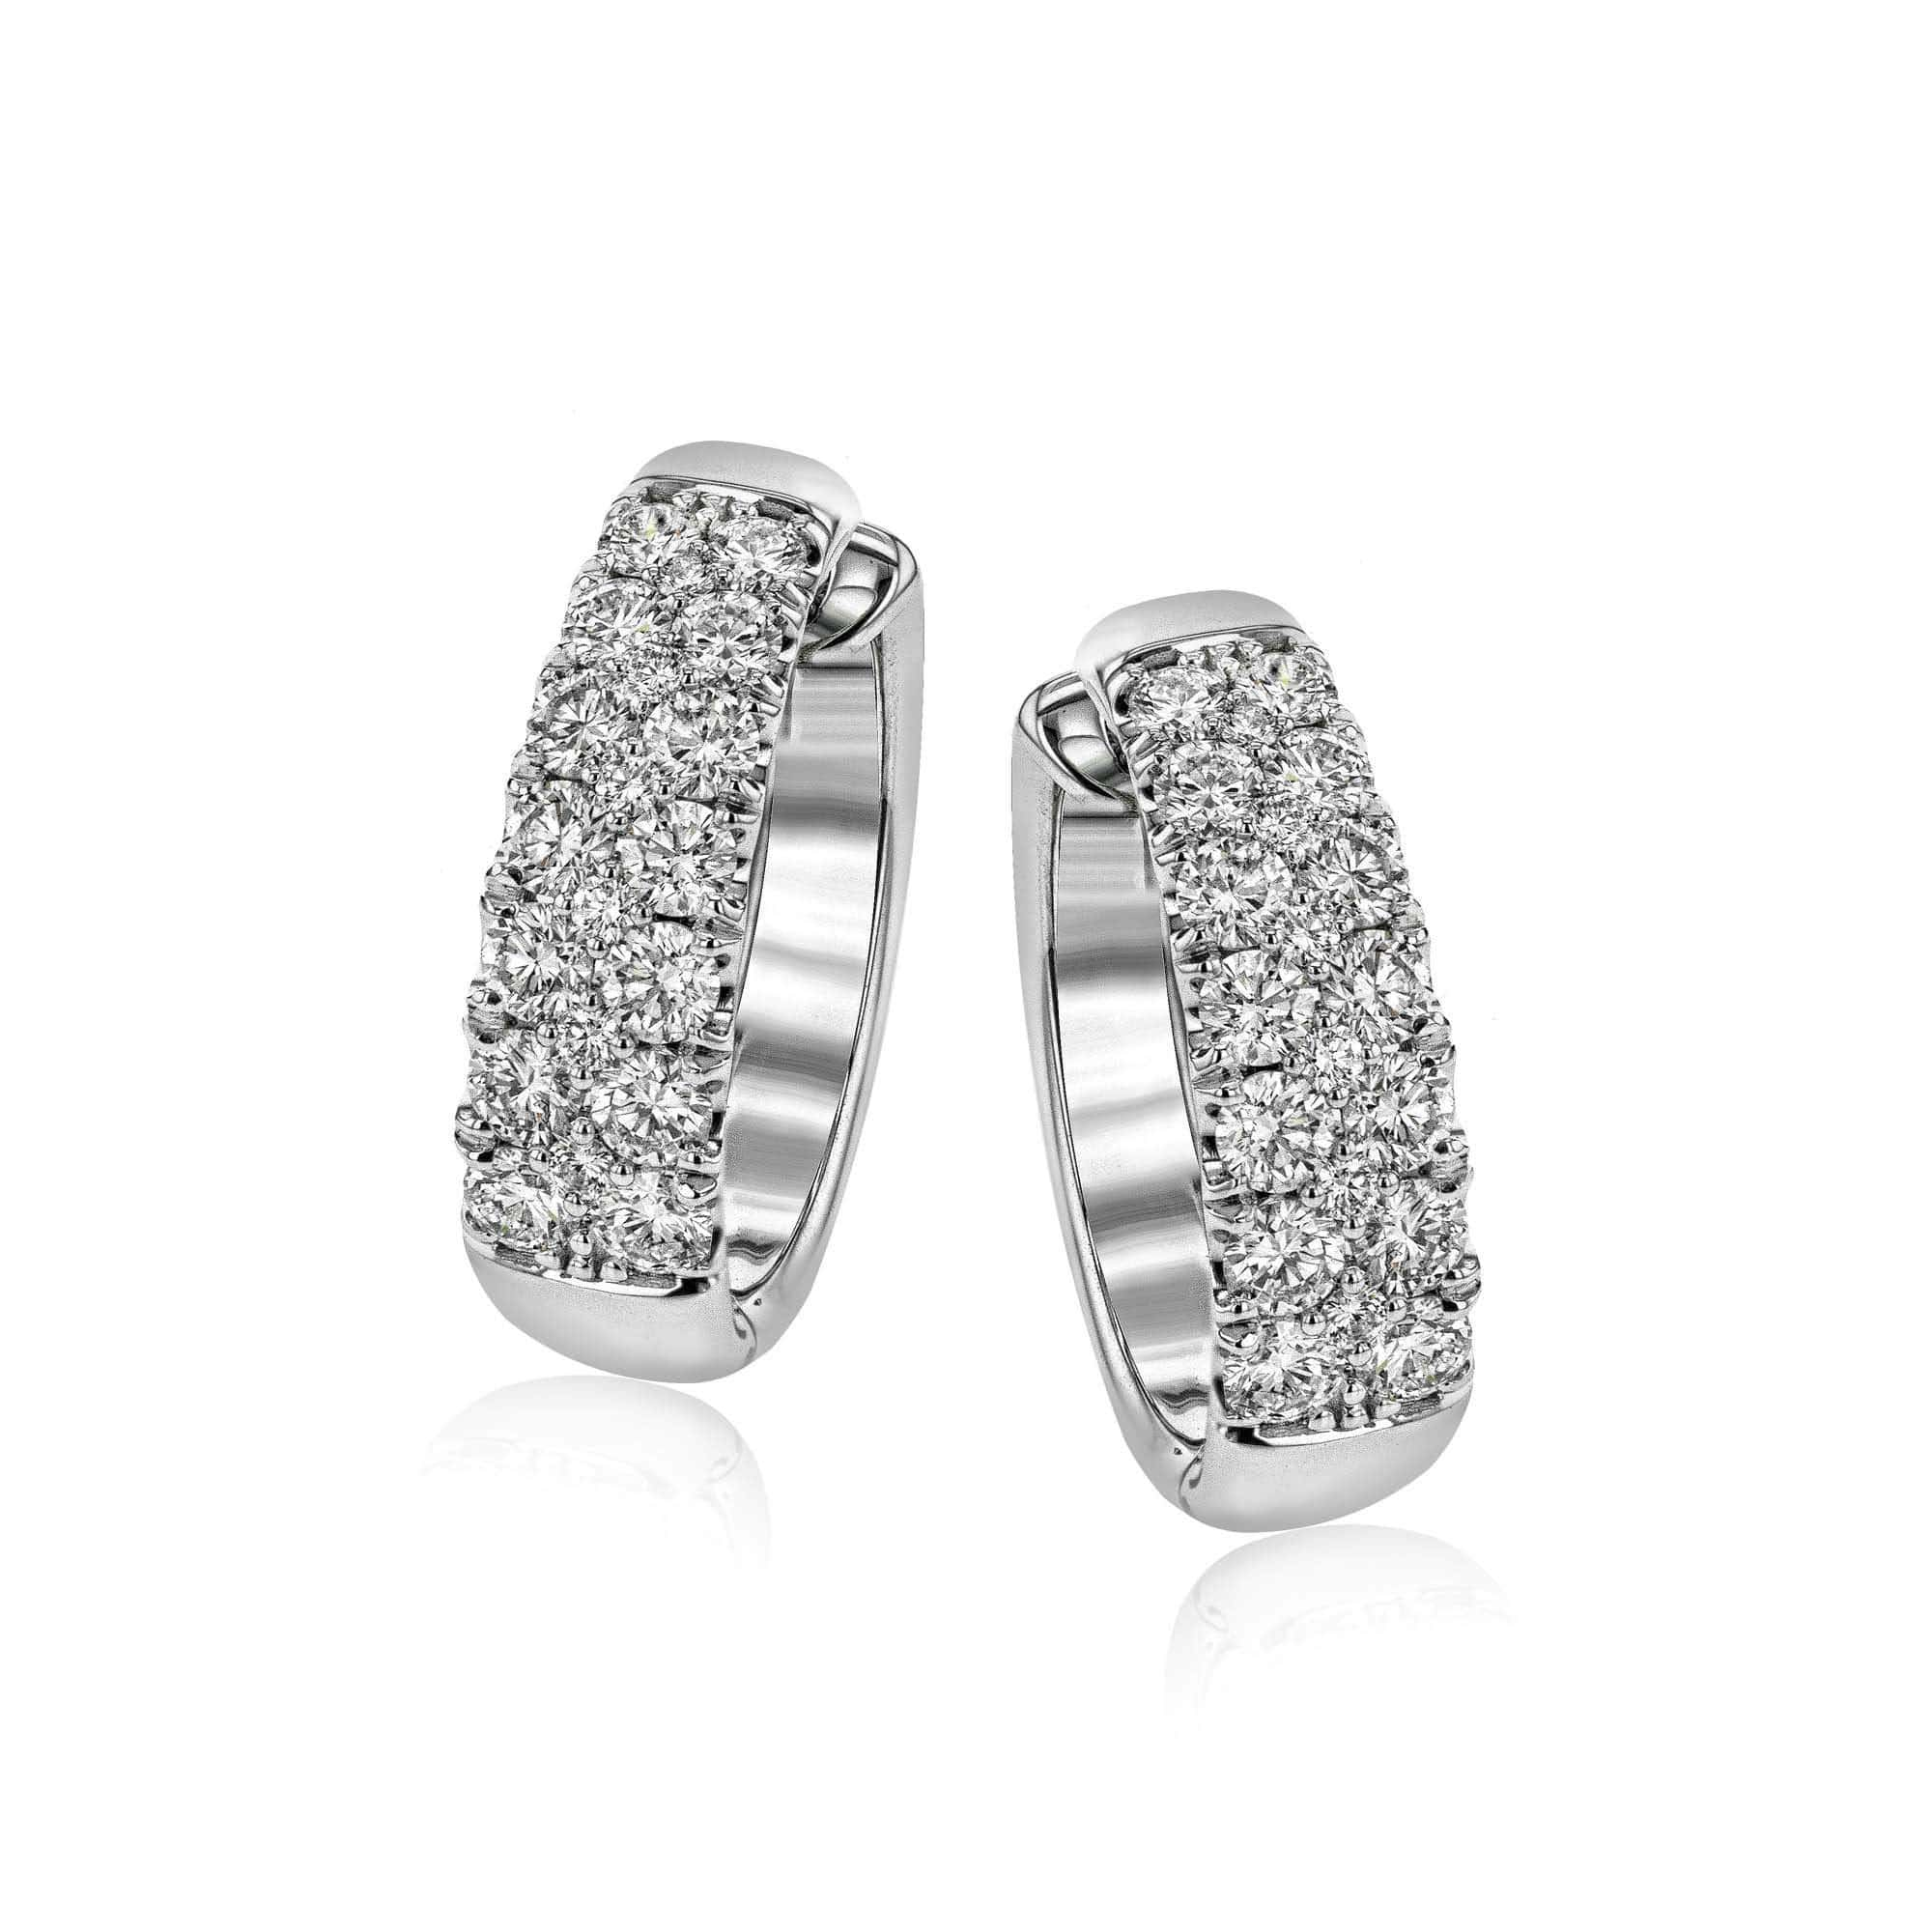 18k White Gold & Diamond Earrings - LE4391-Simon G.-Renee Taylor Gallery